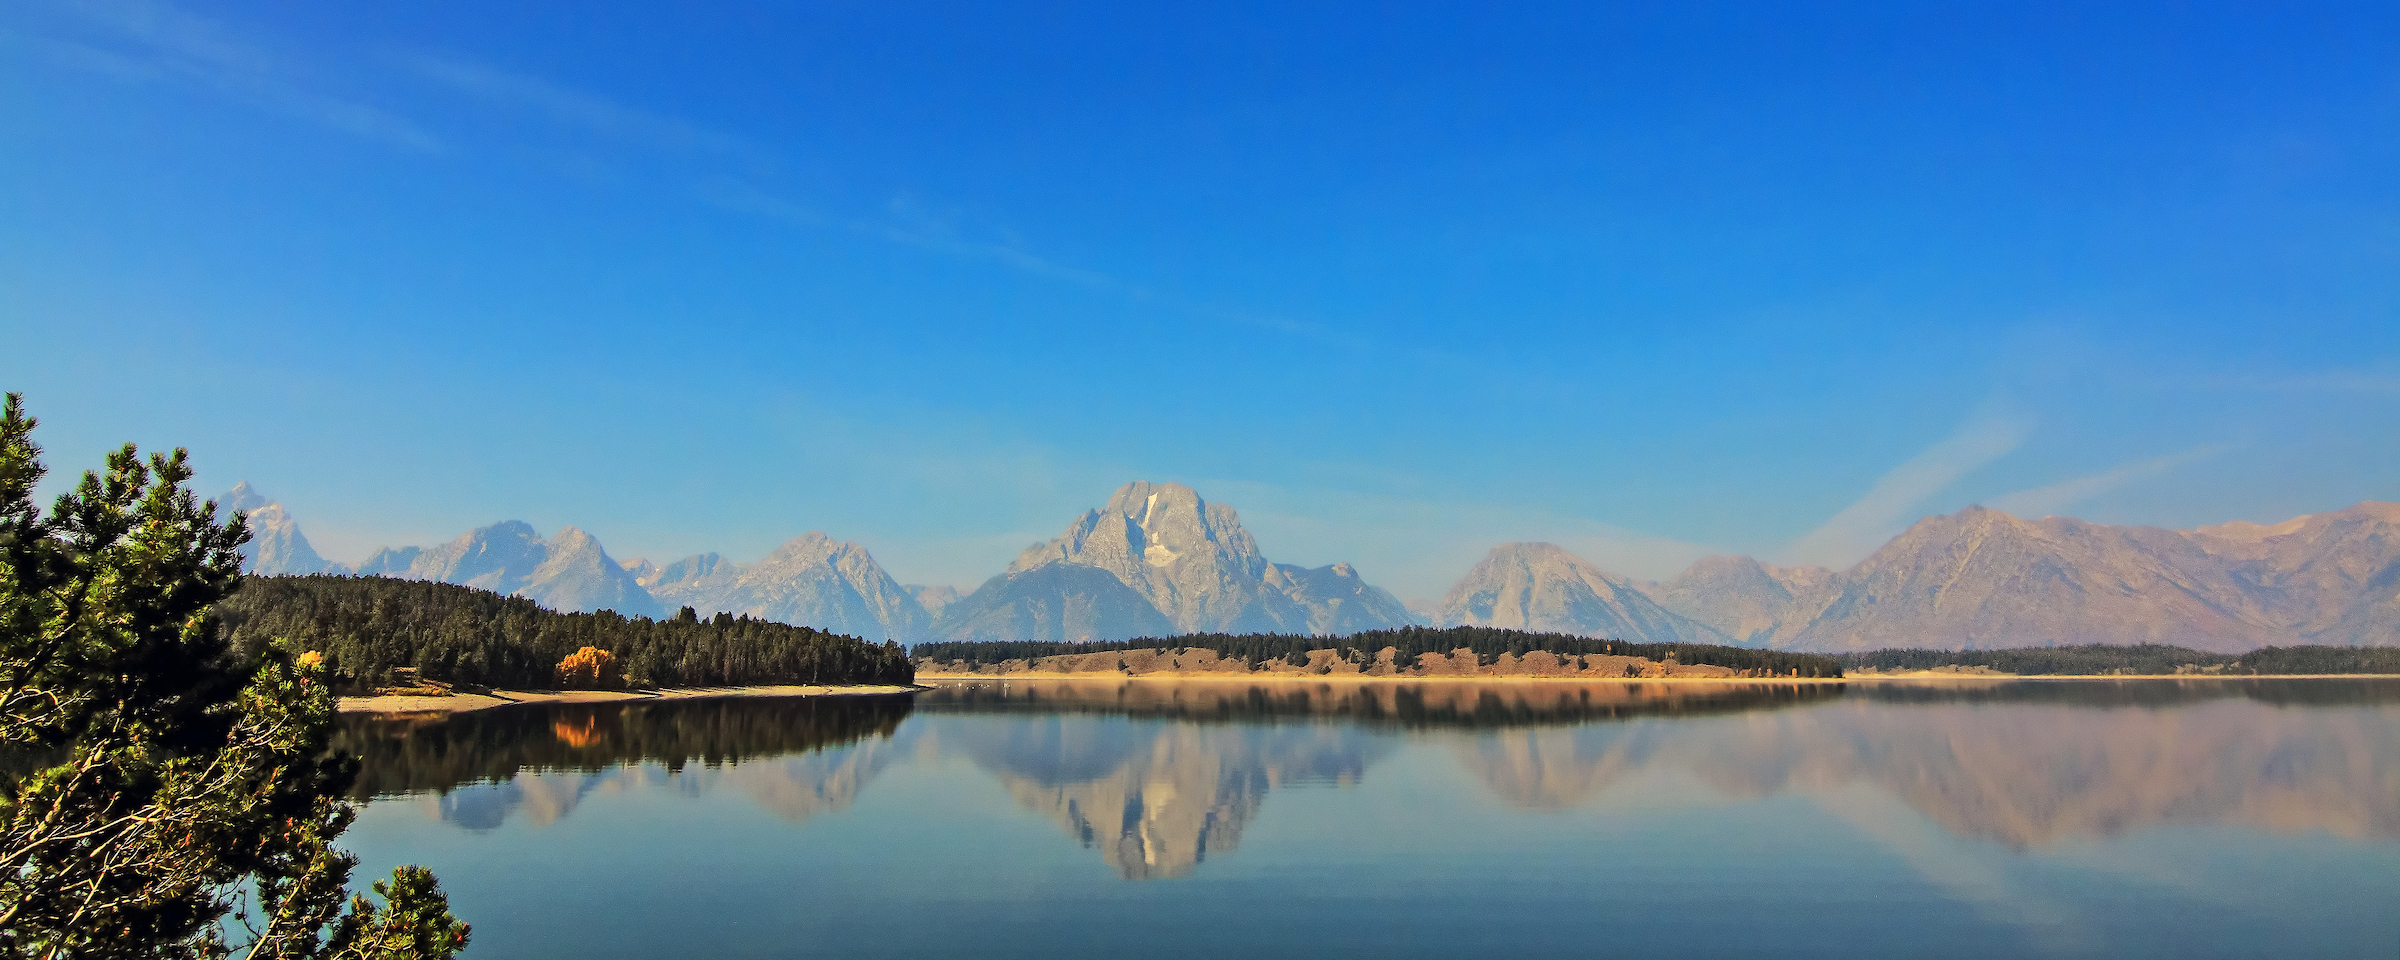 Autumn in the Grand Tetons